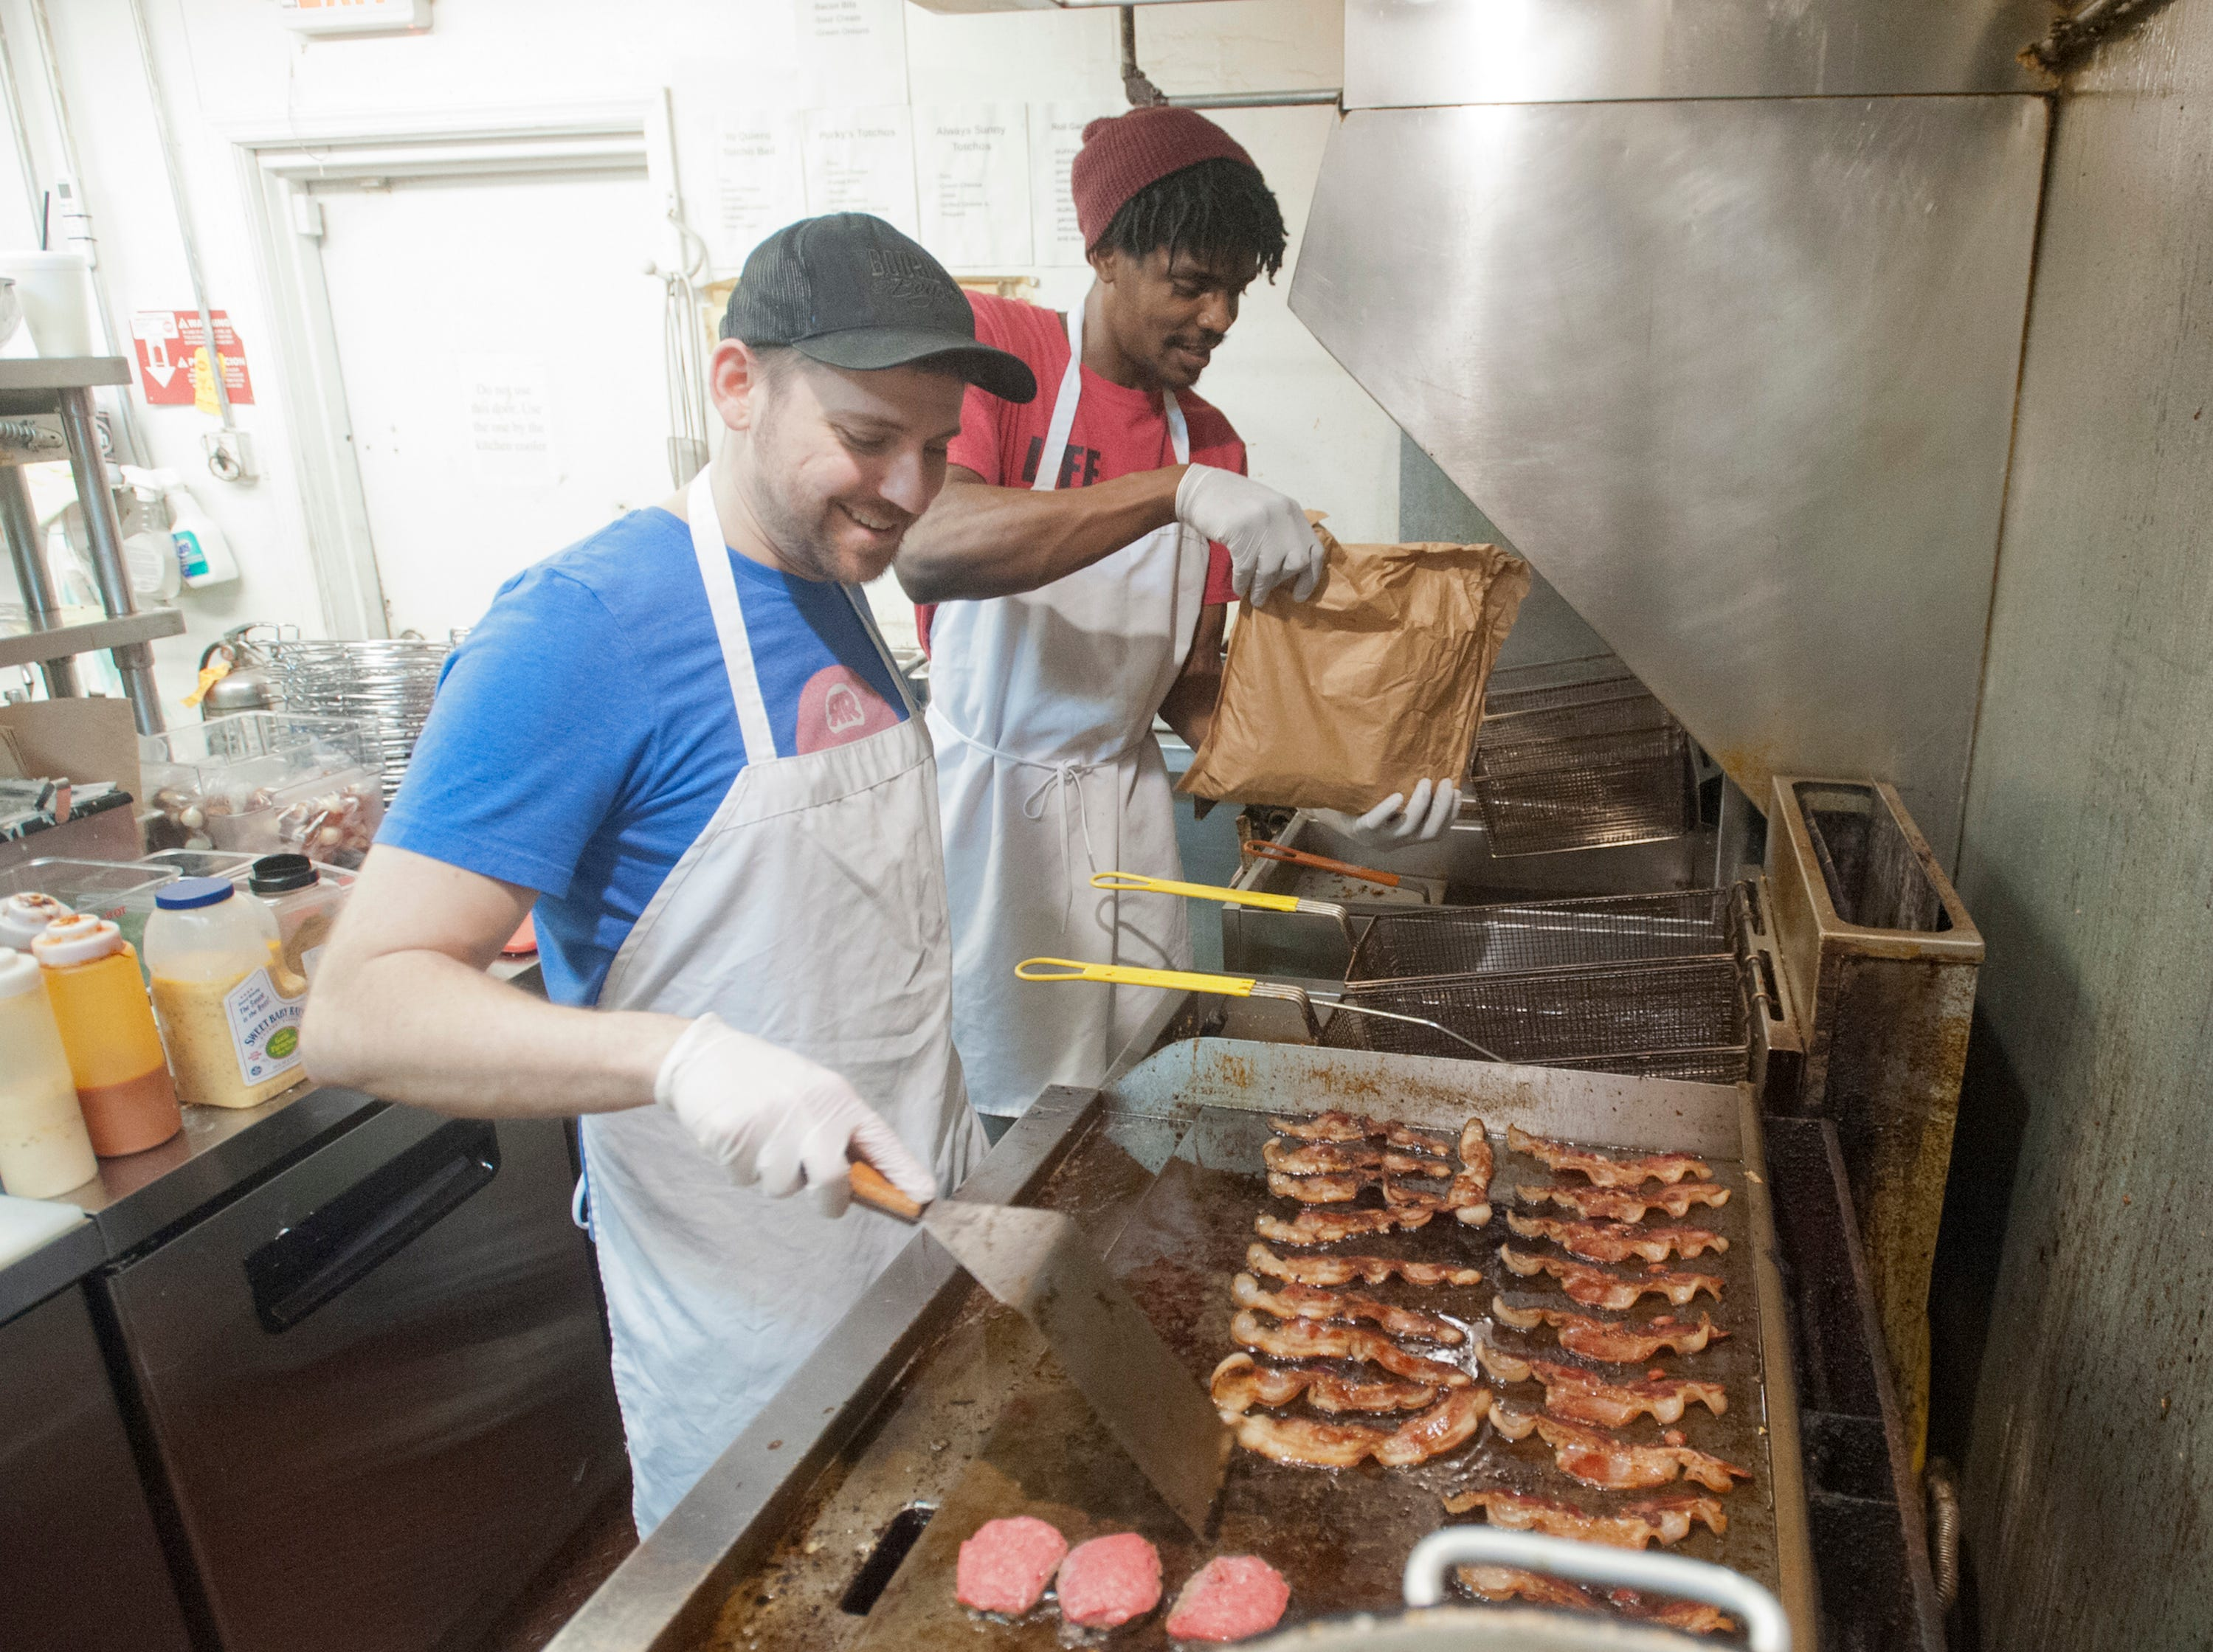 The Recbar's kitchen manager, Jon Quinter, left, tends to a grill filled with bacon as cook Will Breckinridge pours some tater tots into the fryer.14 March 2019